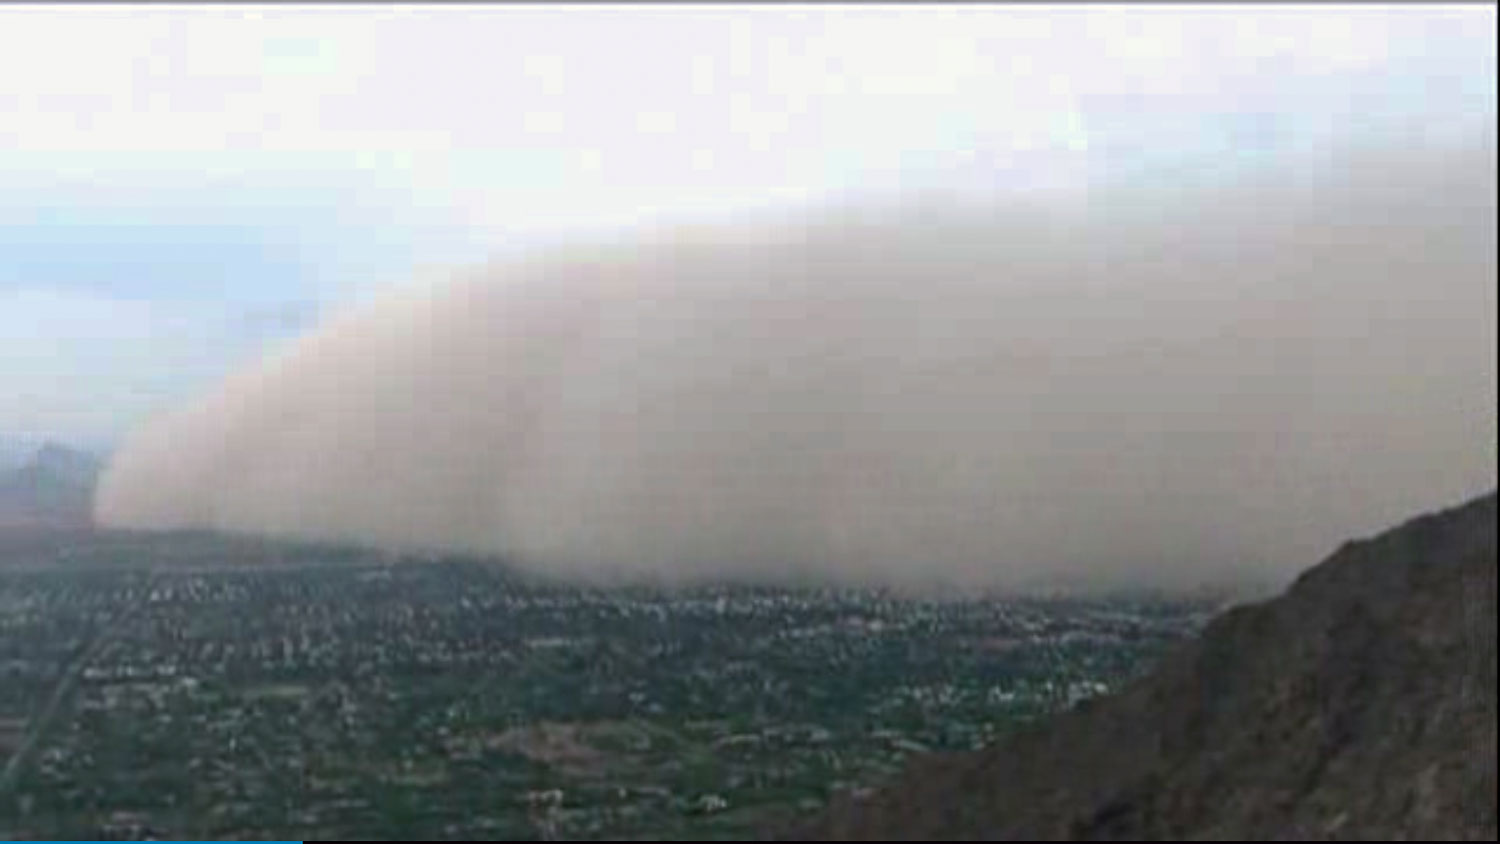 This image made from video provided by ABC15.com shows a massive dust storm over Phoenix Arizona Friday July 25, 2014. The storm covered the Phoenix metropolitan area causing poor visibility and tough driving conditions. (AP Photo/ABC15.com)